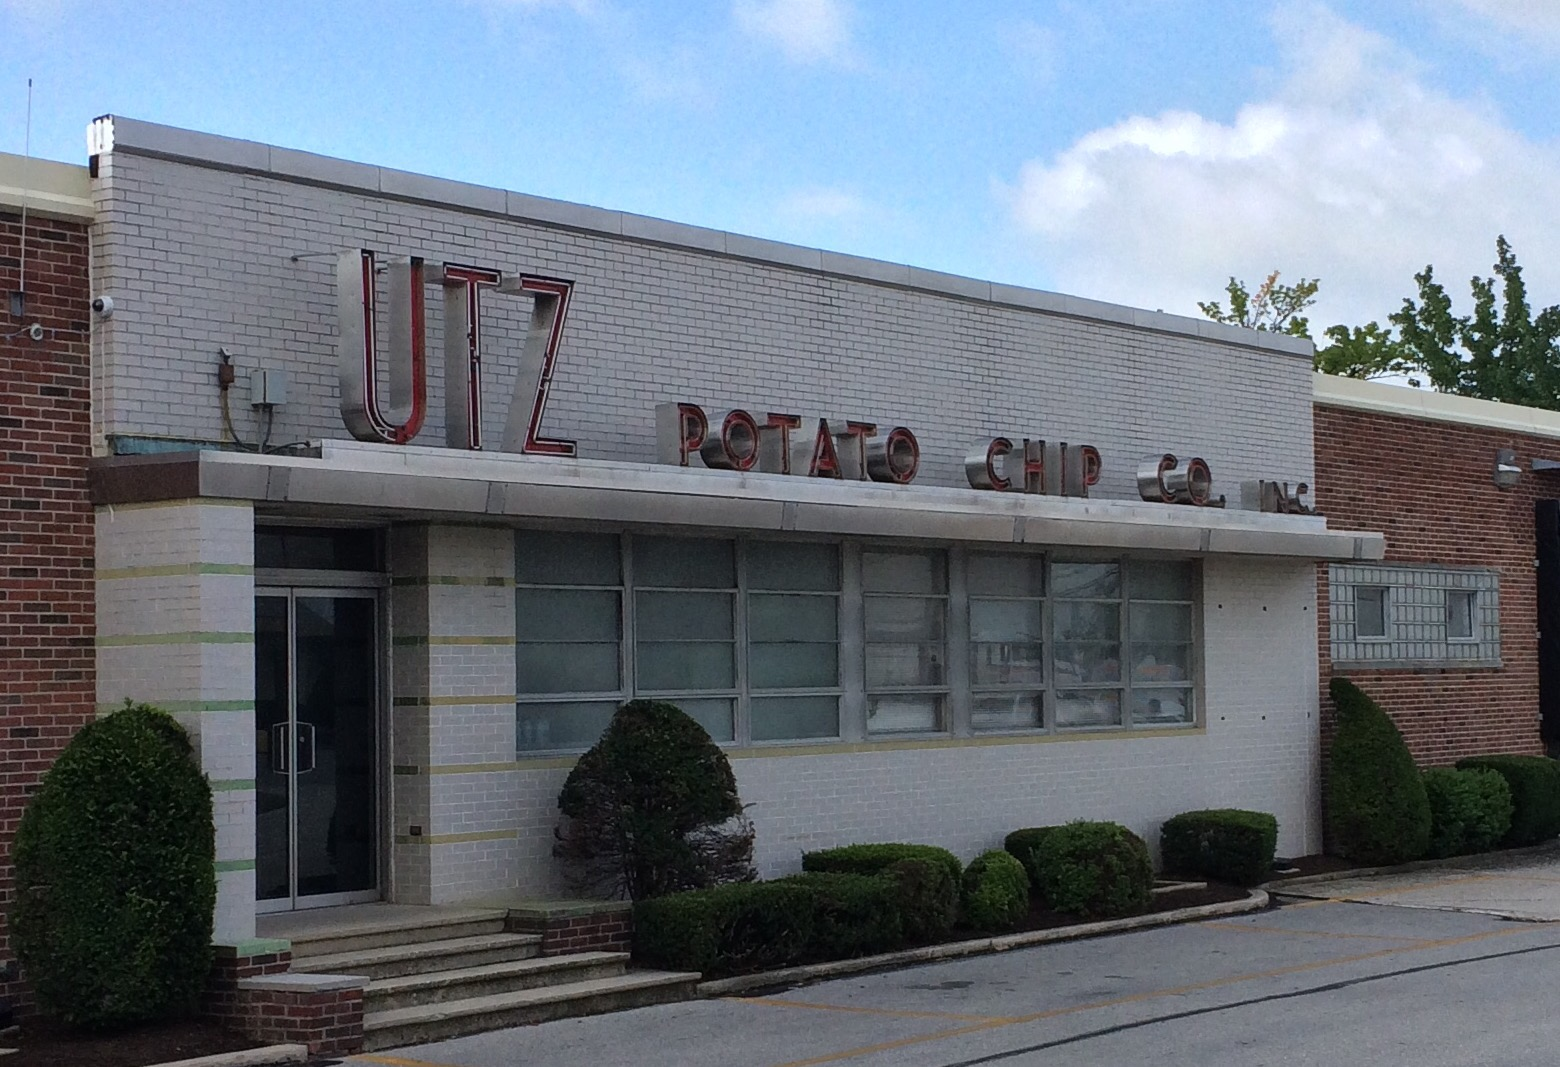 Glamping Tips: How to Visit the Utz Potato Chip Factory Tour